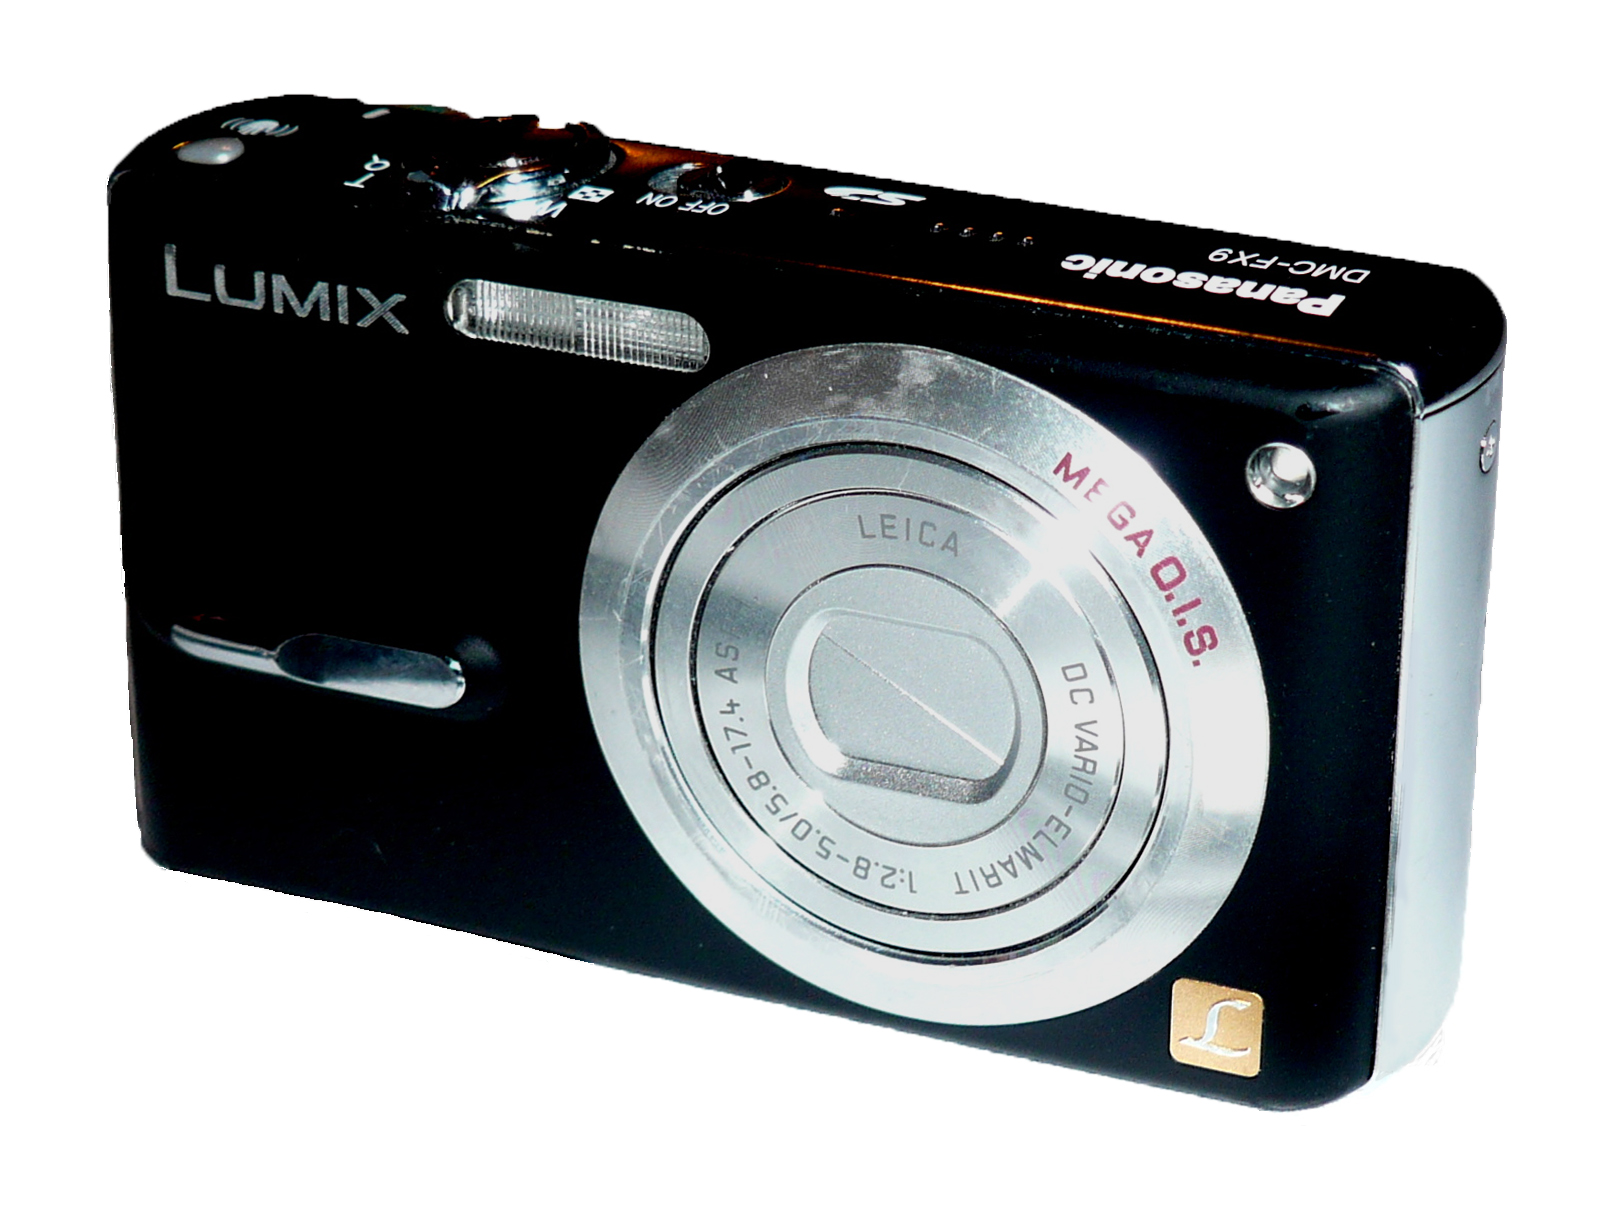 LUMIX DMC FX9 DRIVERS DOWNLOAD